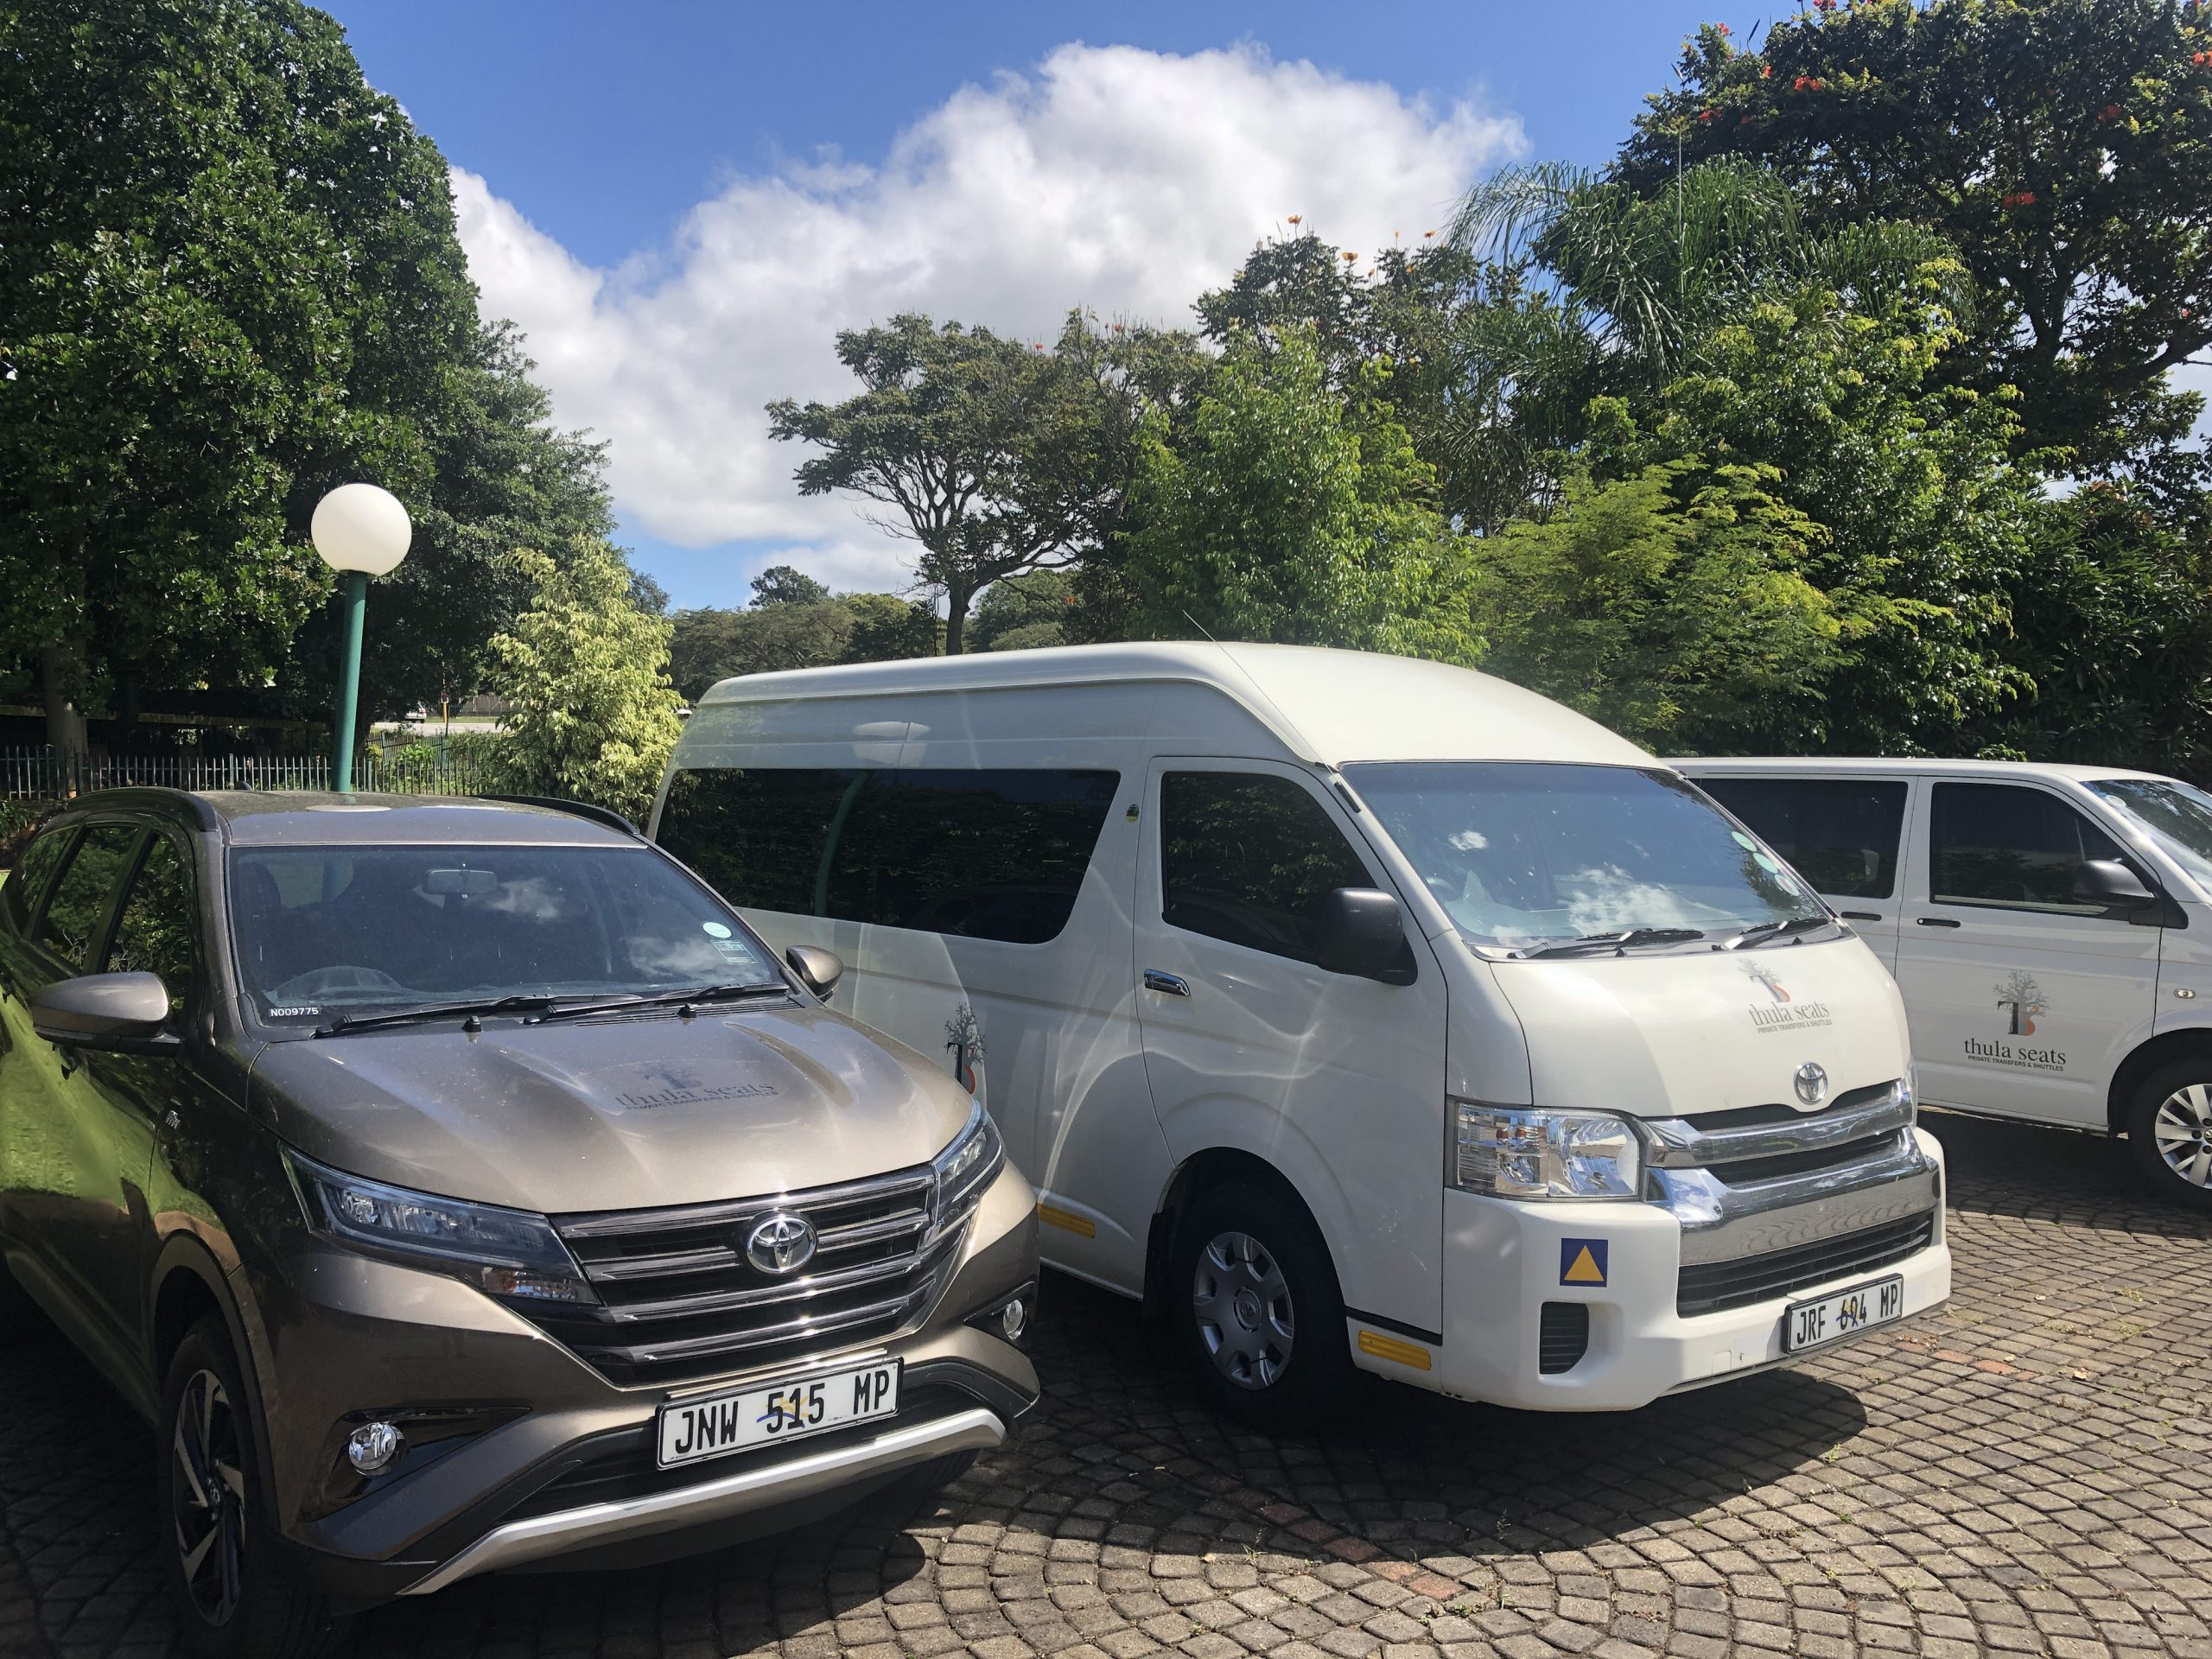 Thula Seats airport transfer vehicles